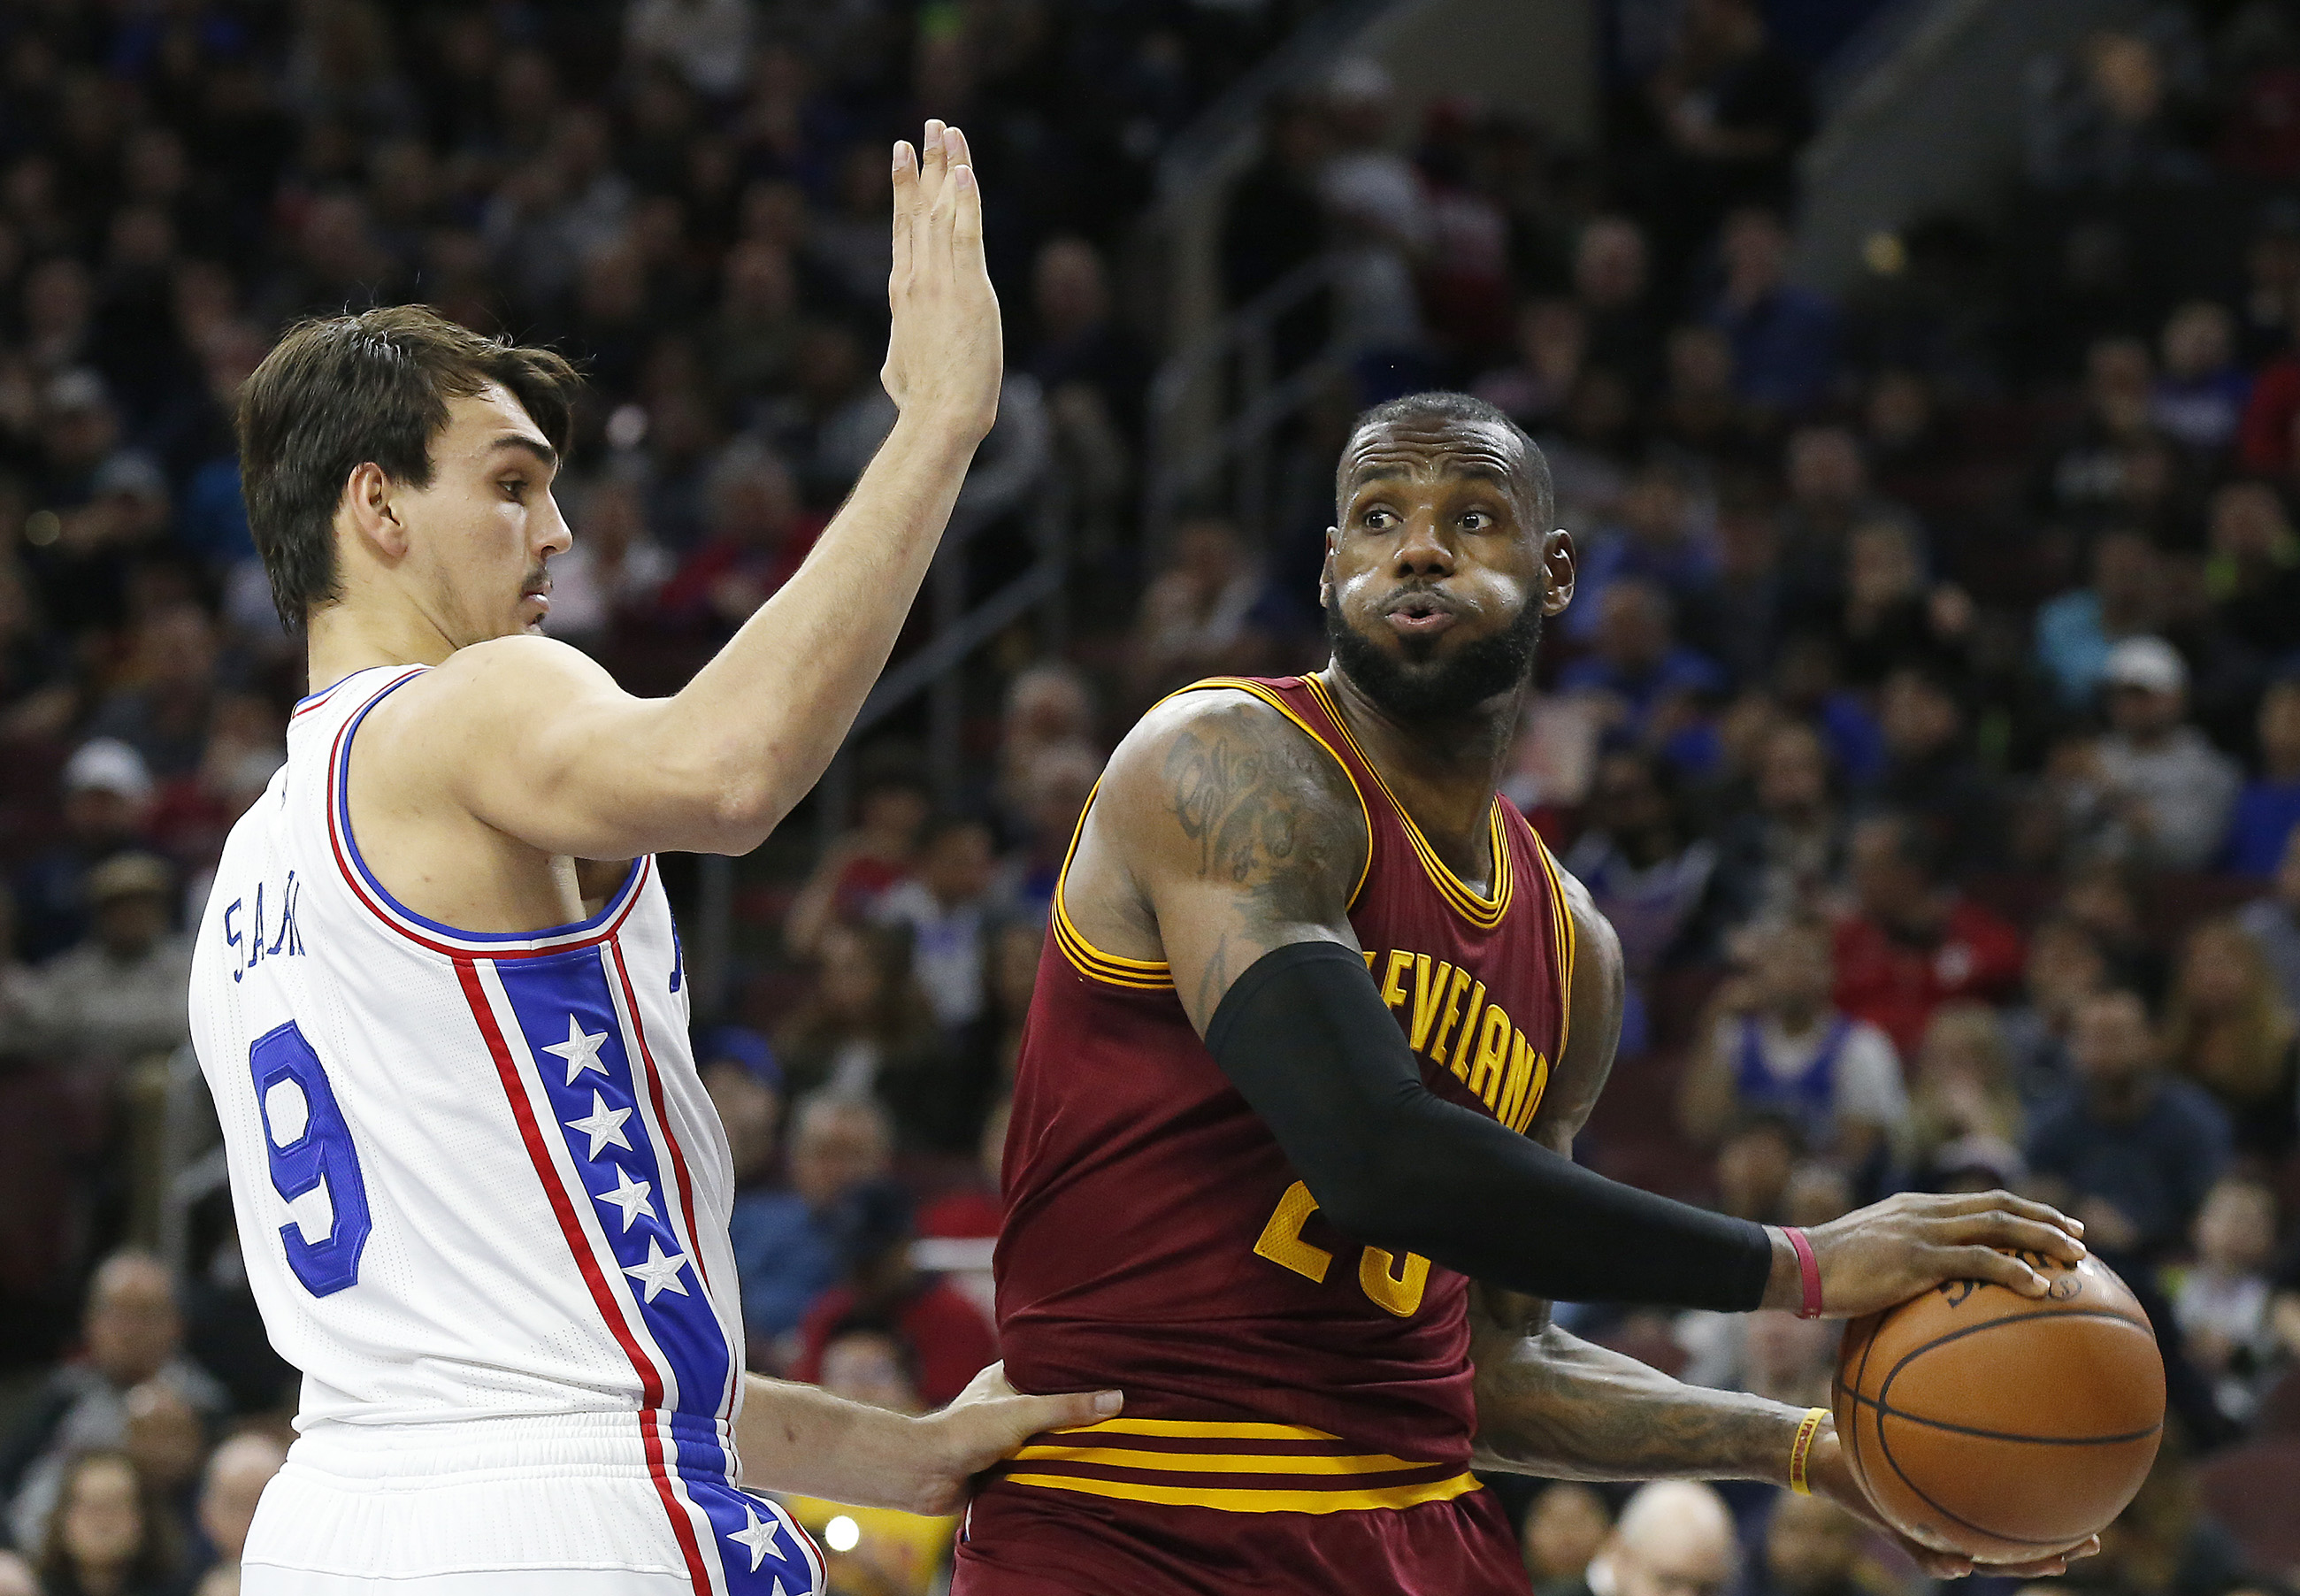 Sixers´ forward Dario Saric defends LeBron James last season. Saric should be available to play against the Cavs on Friday after missing two games with an infection.